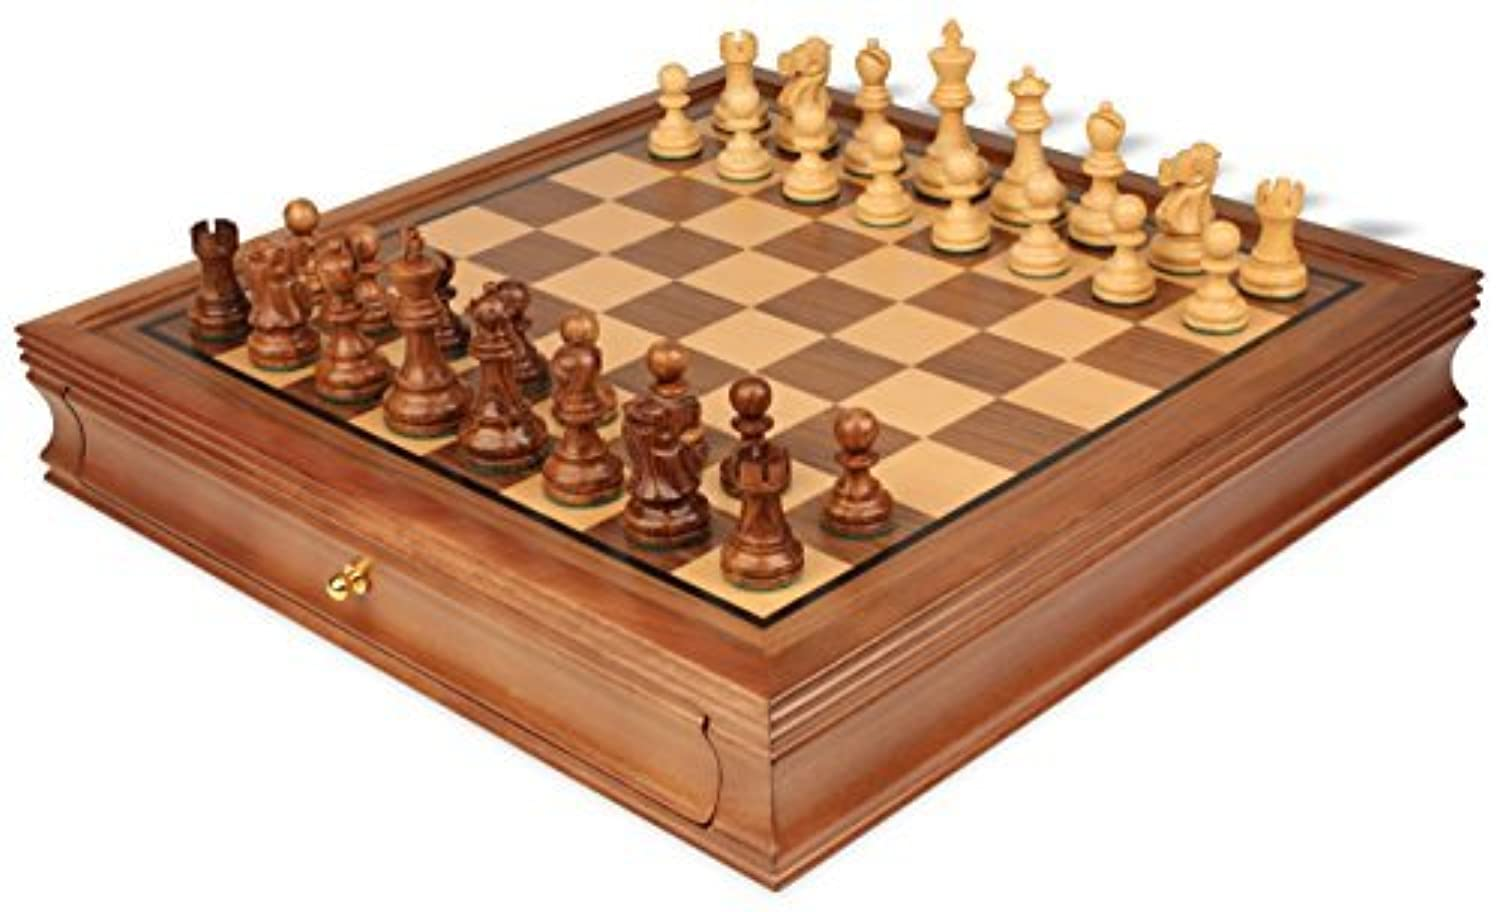 Deluxe Old Club Staunton Chess Set in Golden Rosewood & Boxwood with Walnut Chess Case - 3.25